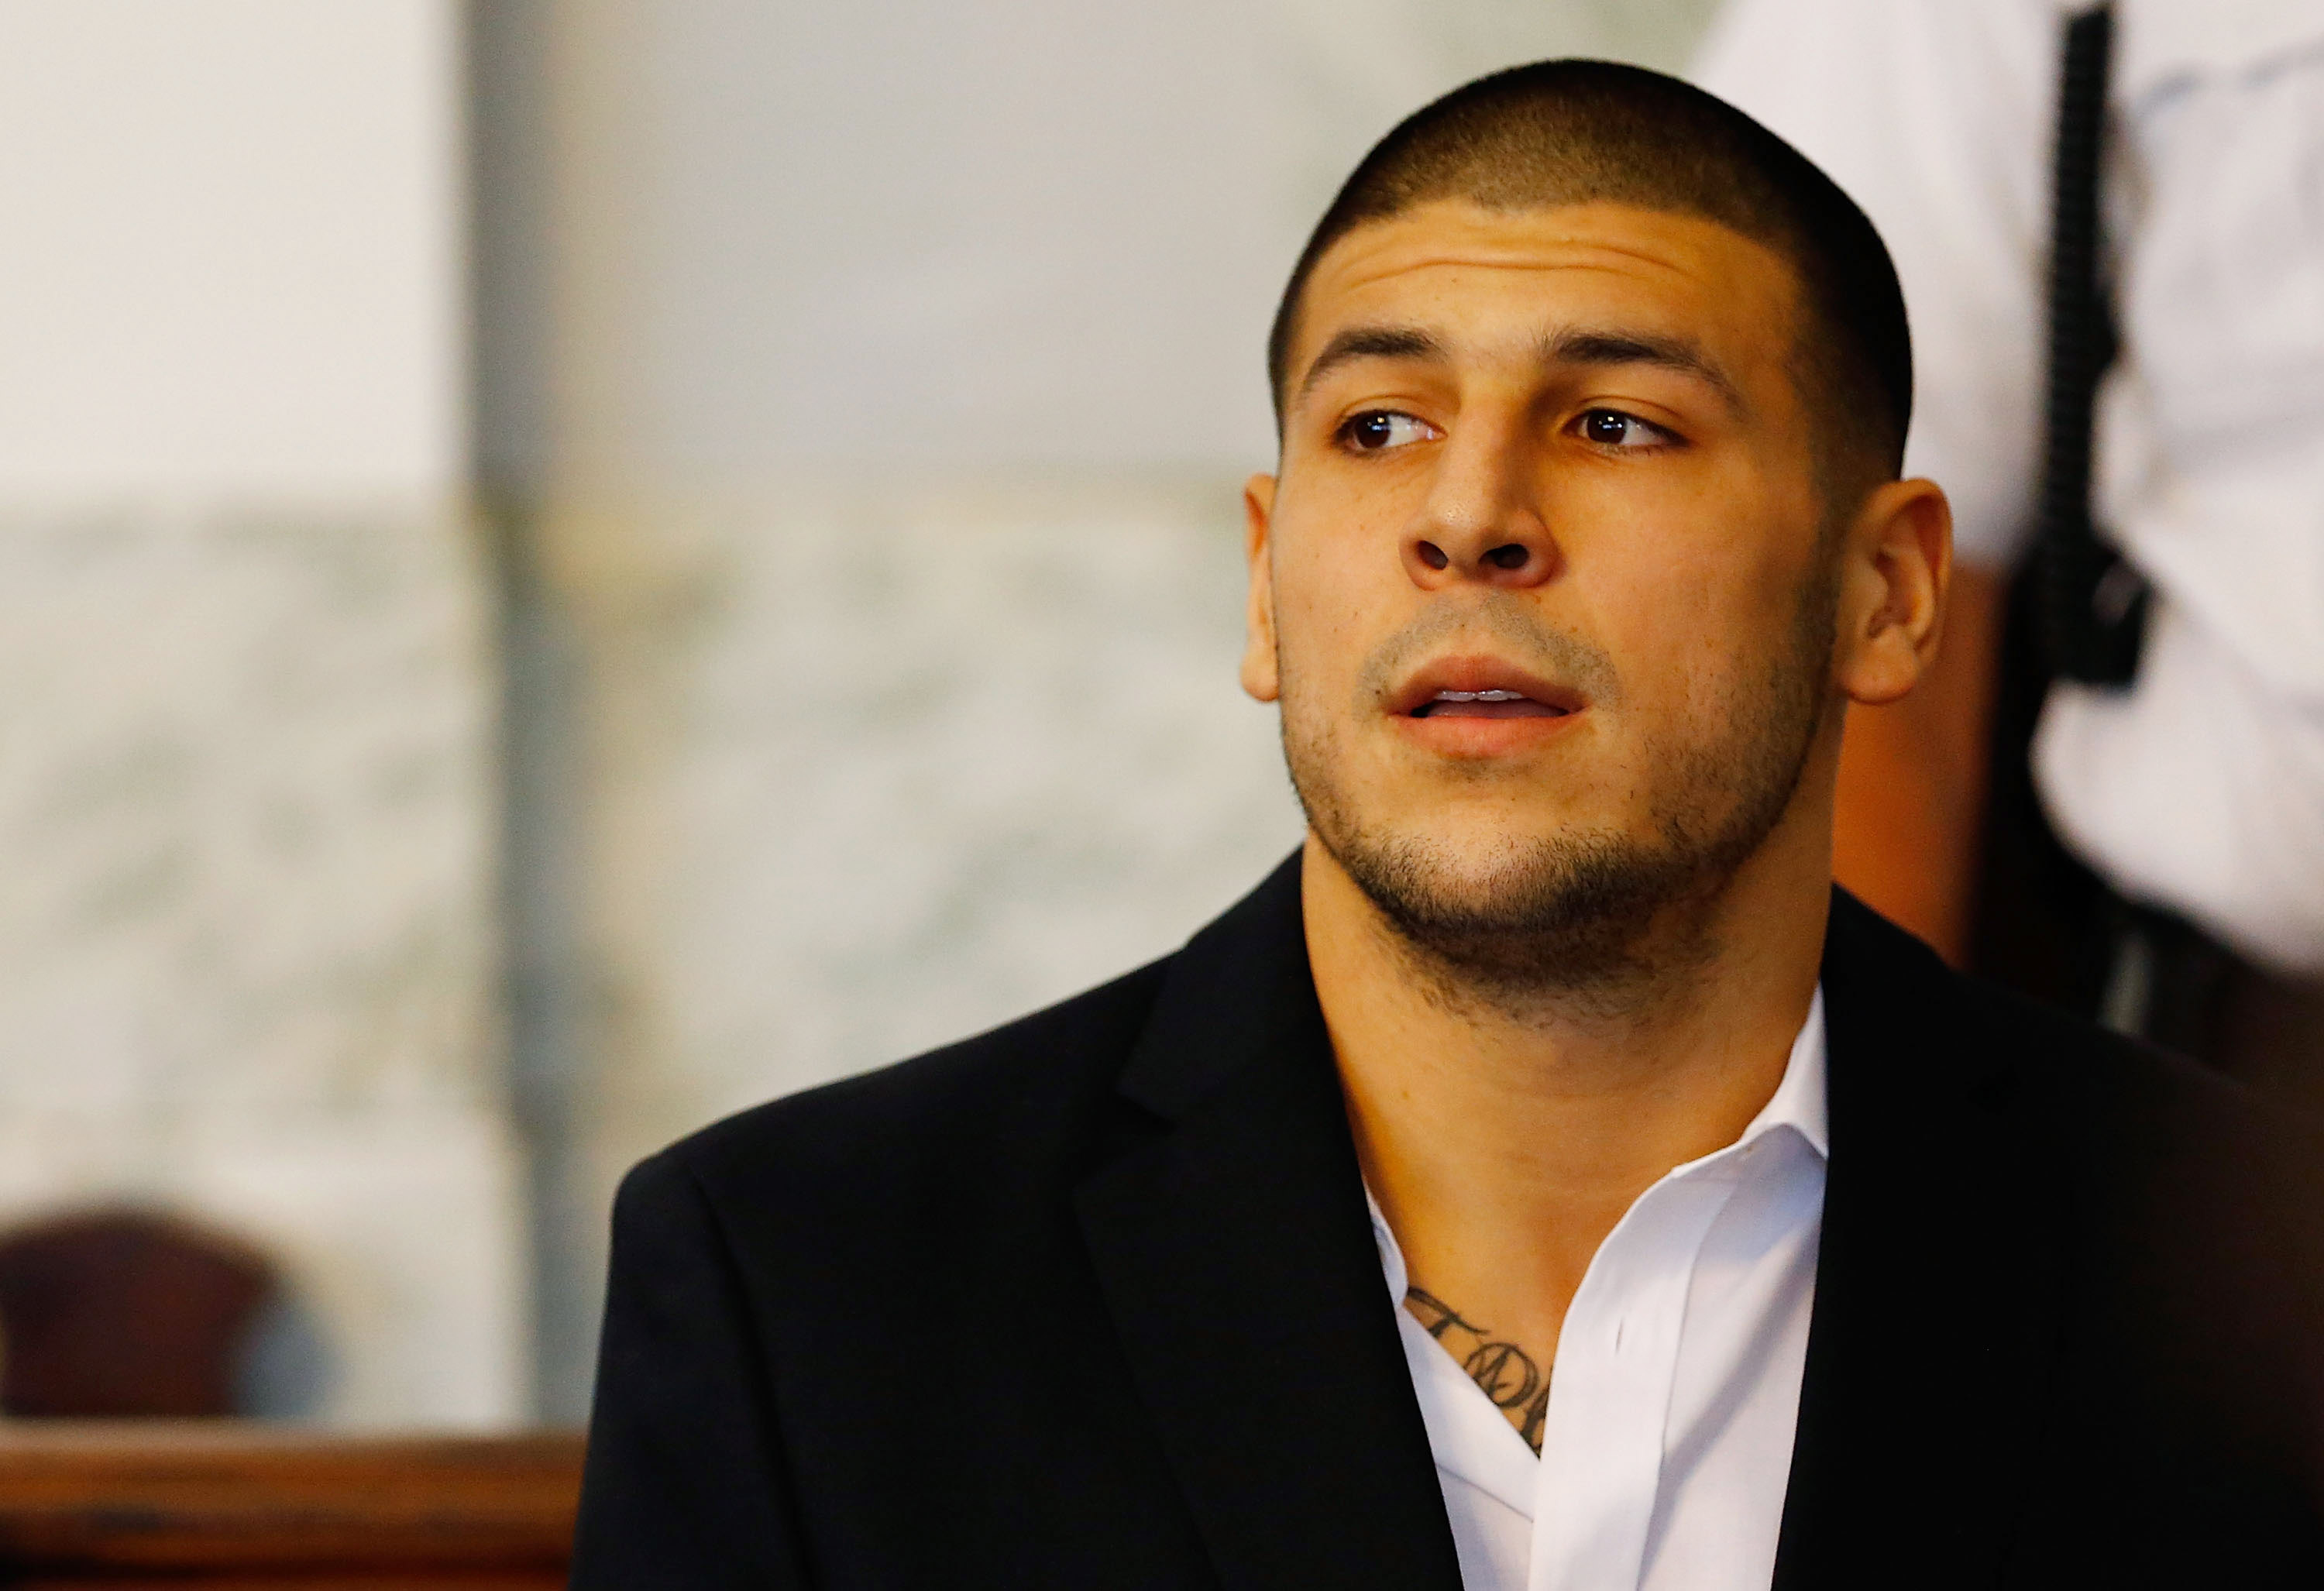 Aaron Hernandez's attorney denies claims that he took his life due to his struggle with his sexuality.